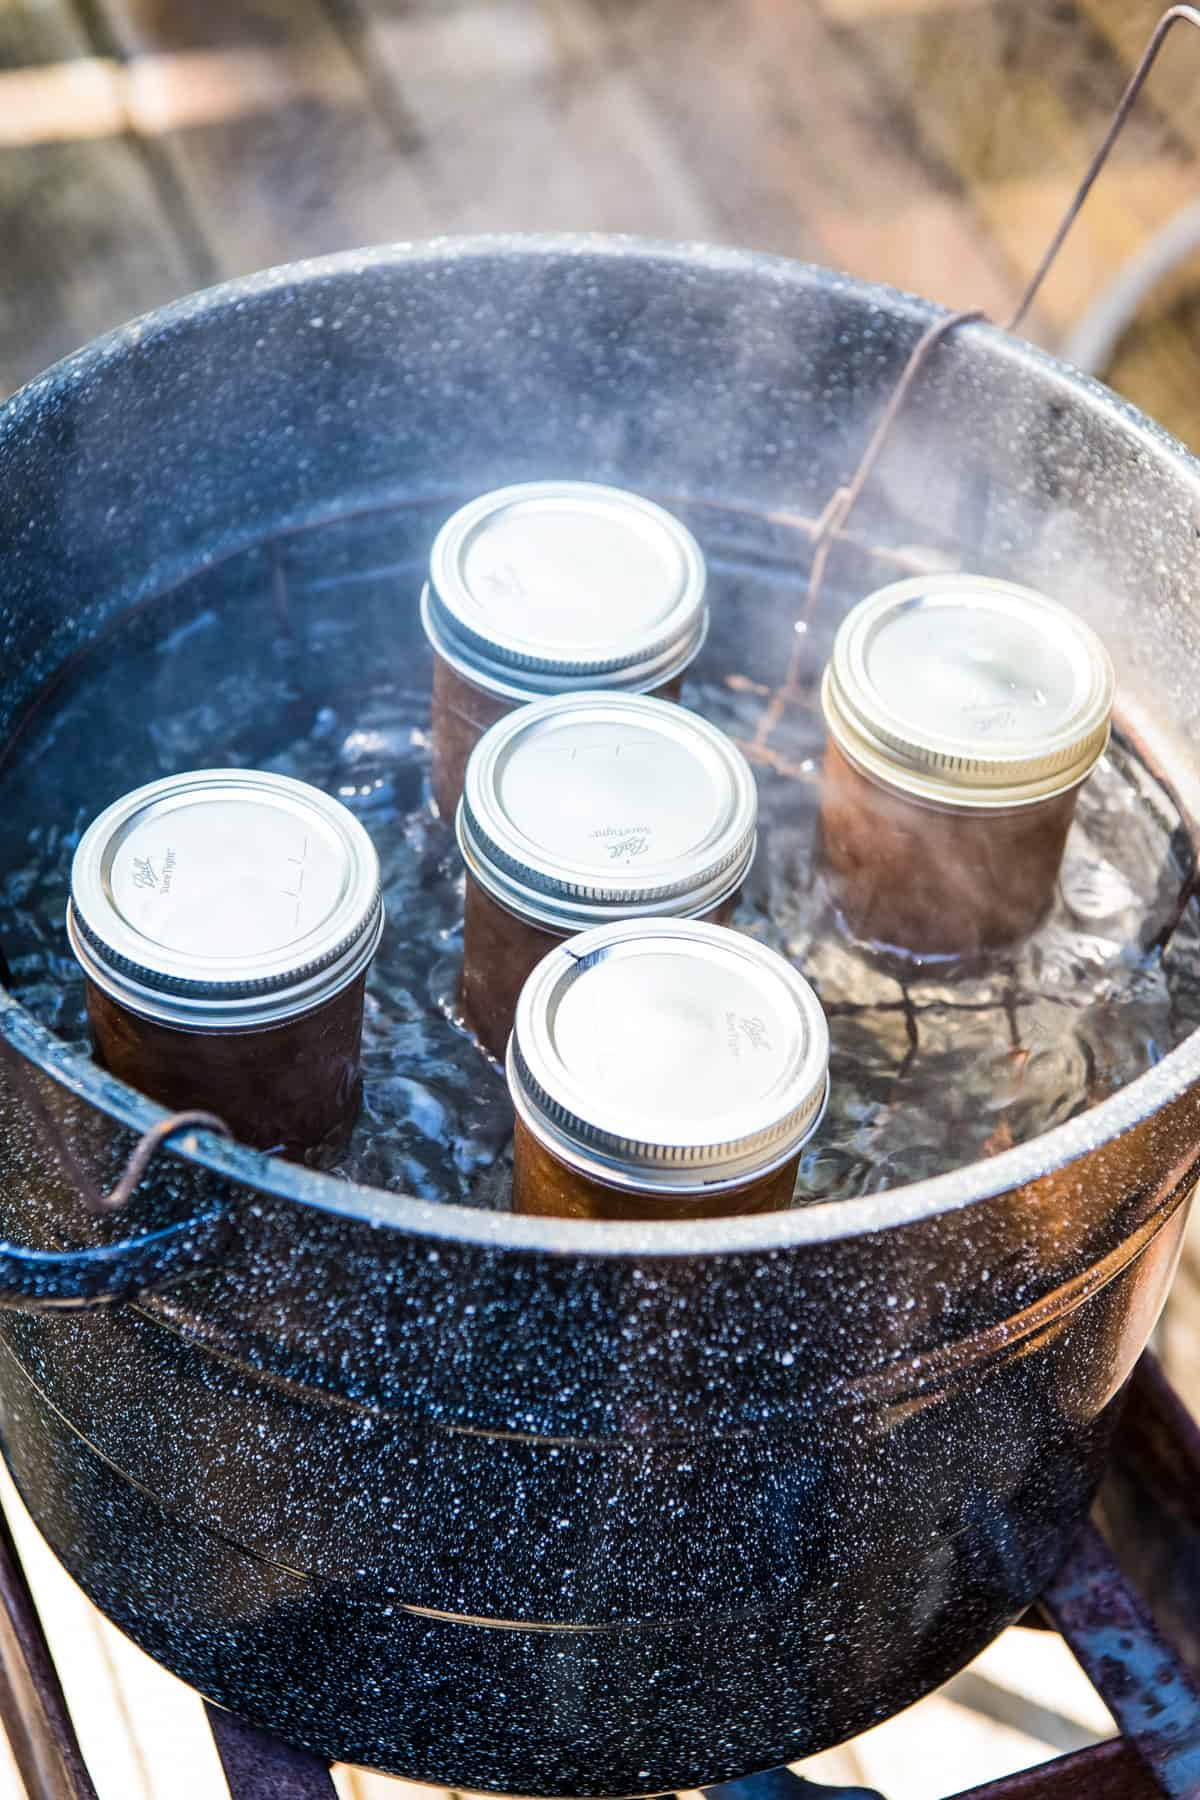 hot water bath canning jars of apple butter in water bath canner